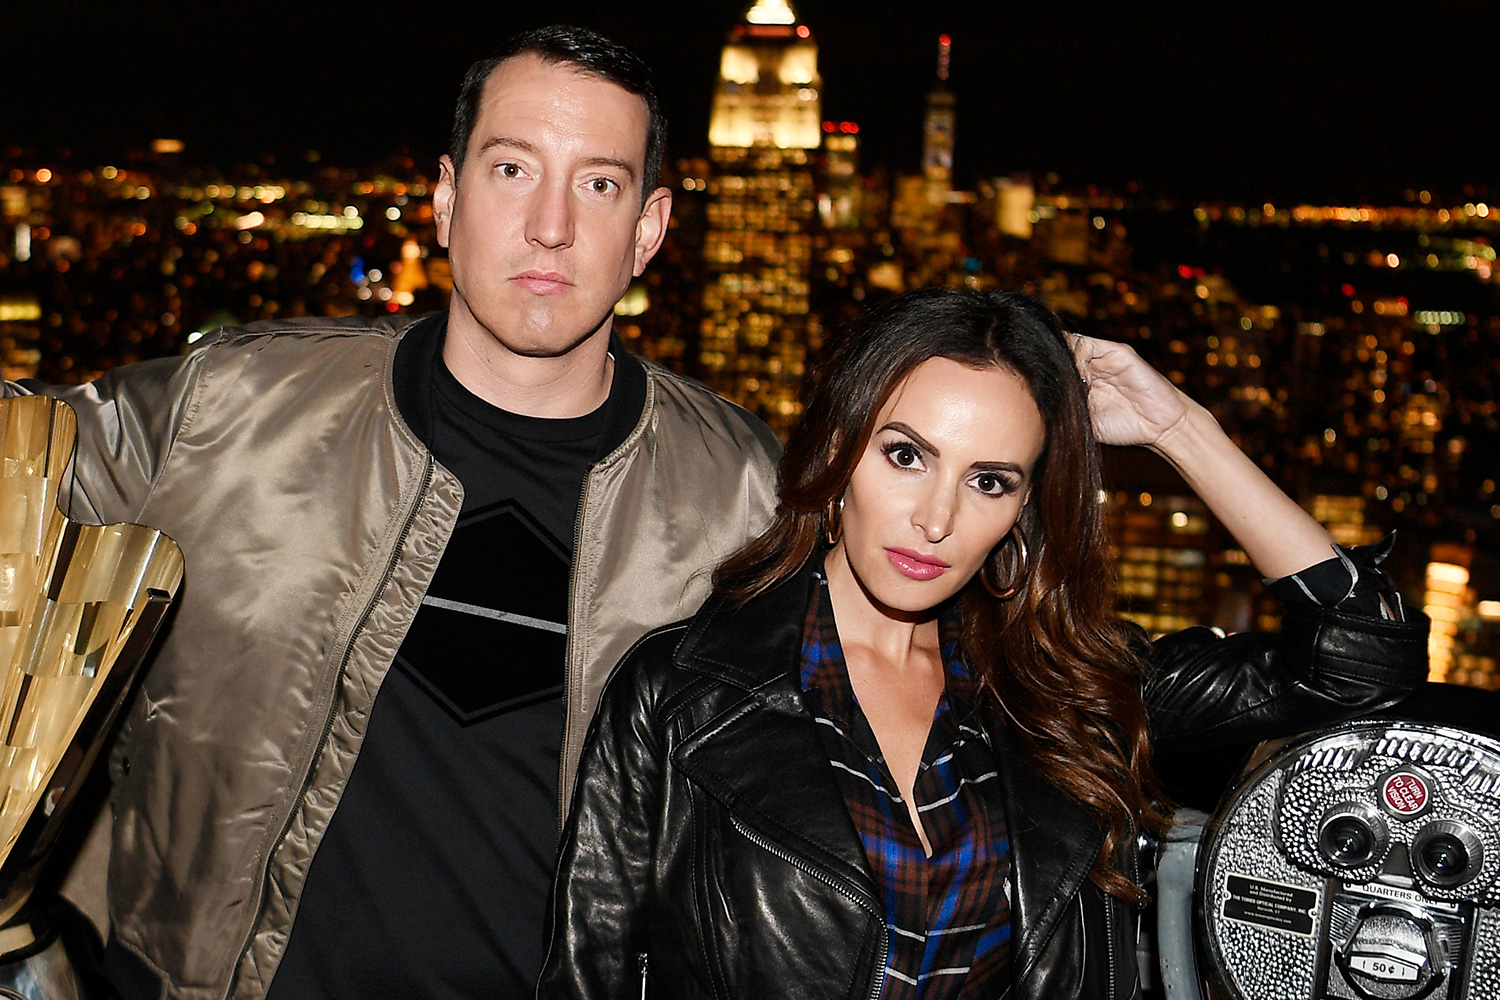 Kyle Busch Visits Top Of The Rock During The 2019 NASCAR Champion's Media Tour